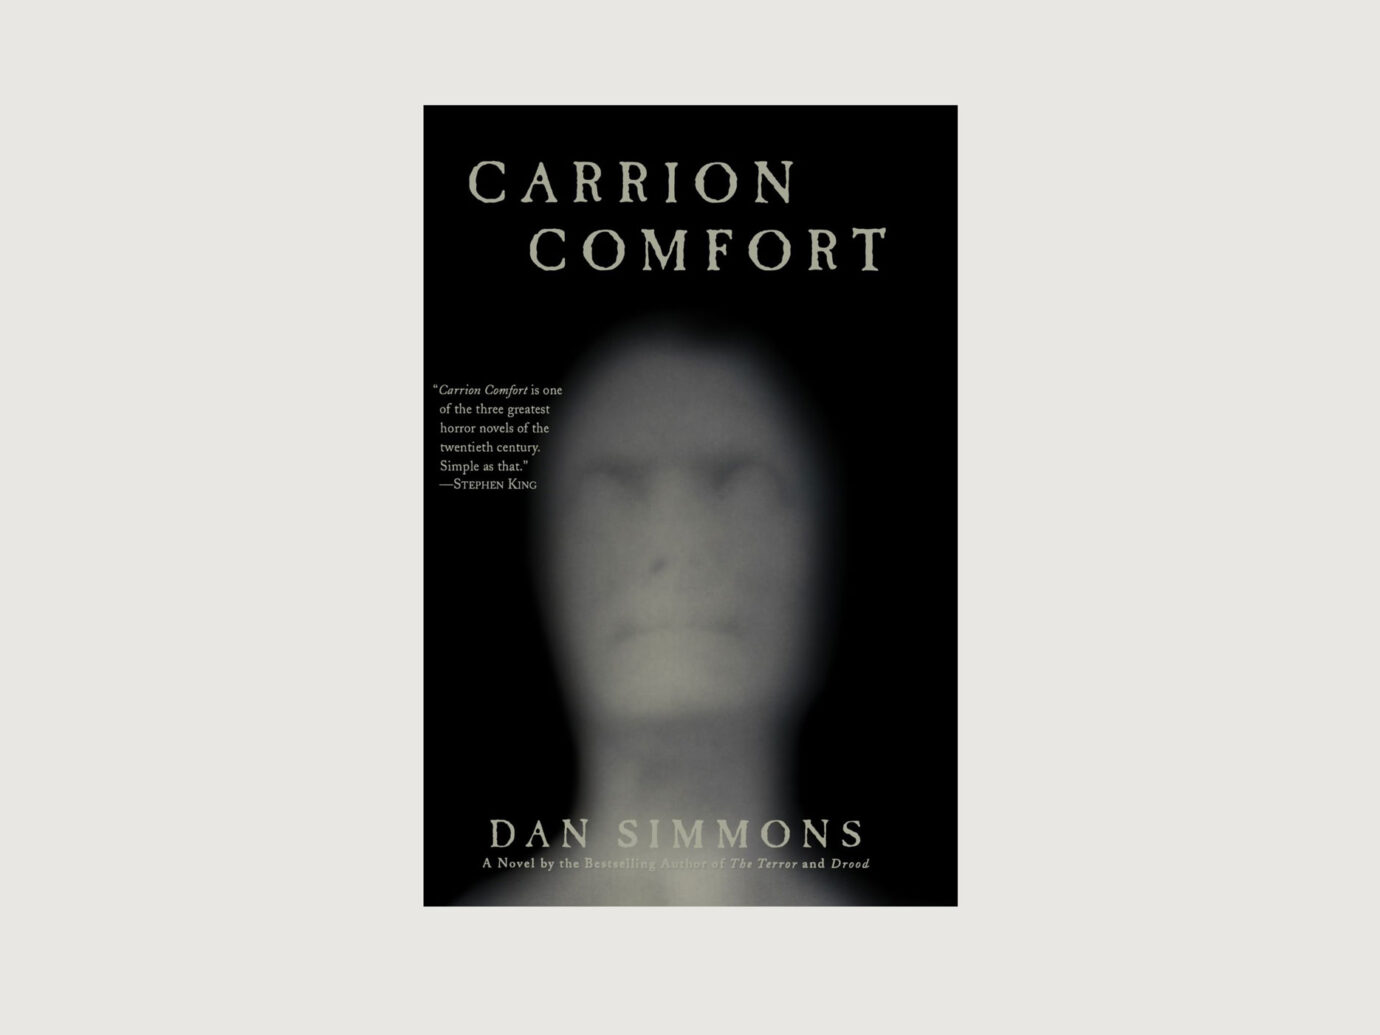 Carrion Comfort: A Novel by Dan Simmons